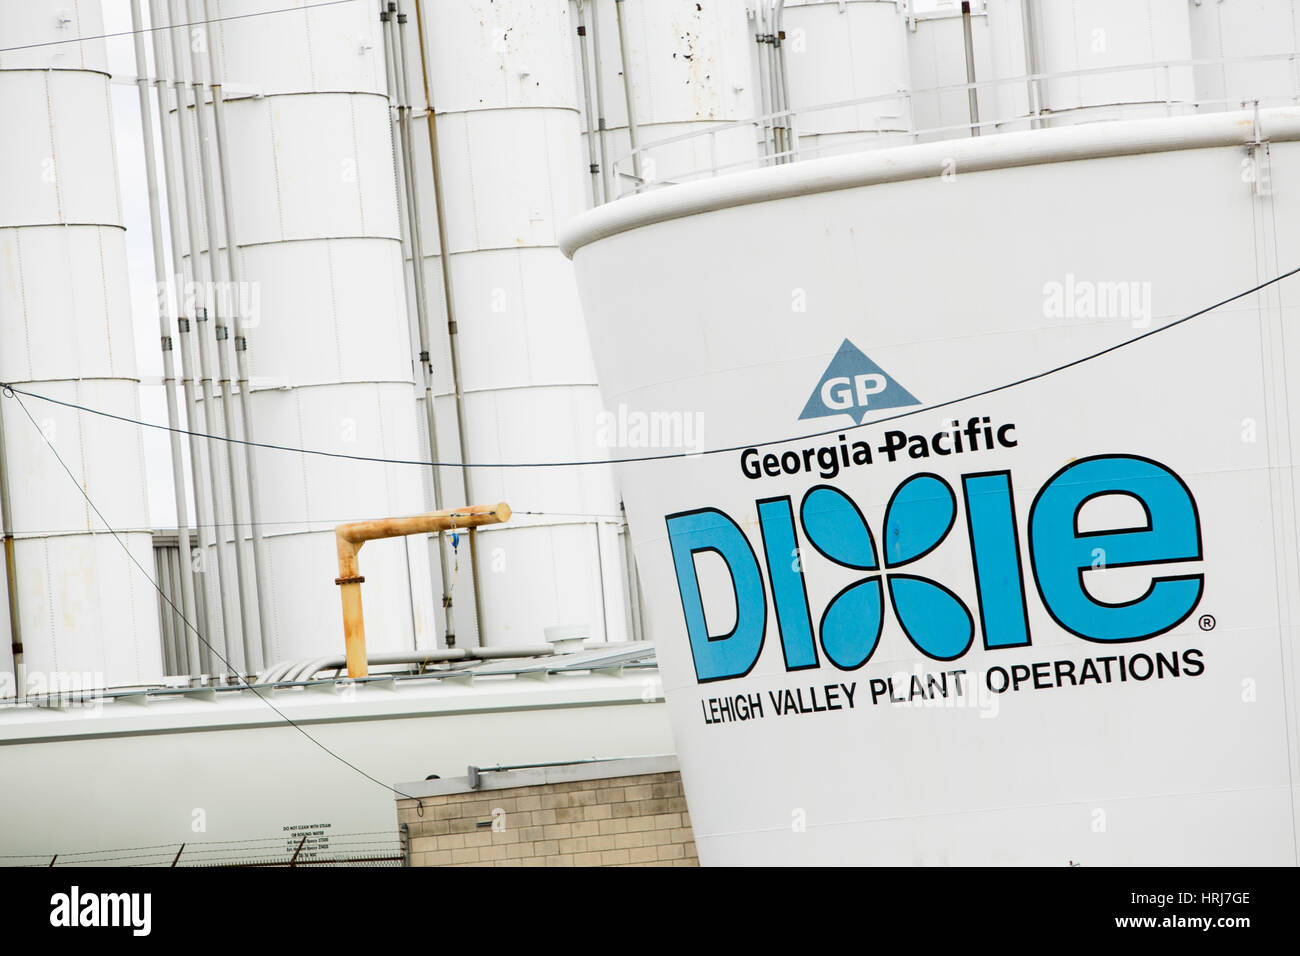 A logo sign outside of the Georgia-Pacific Dixie Cup factory